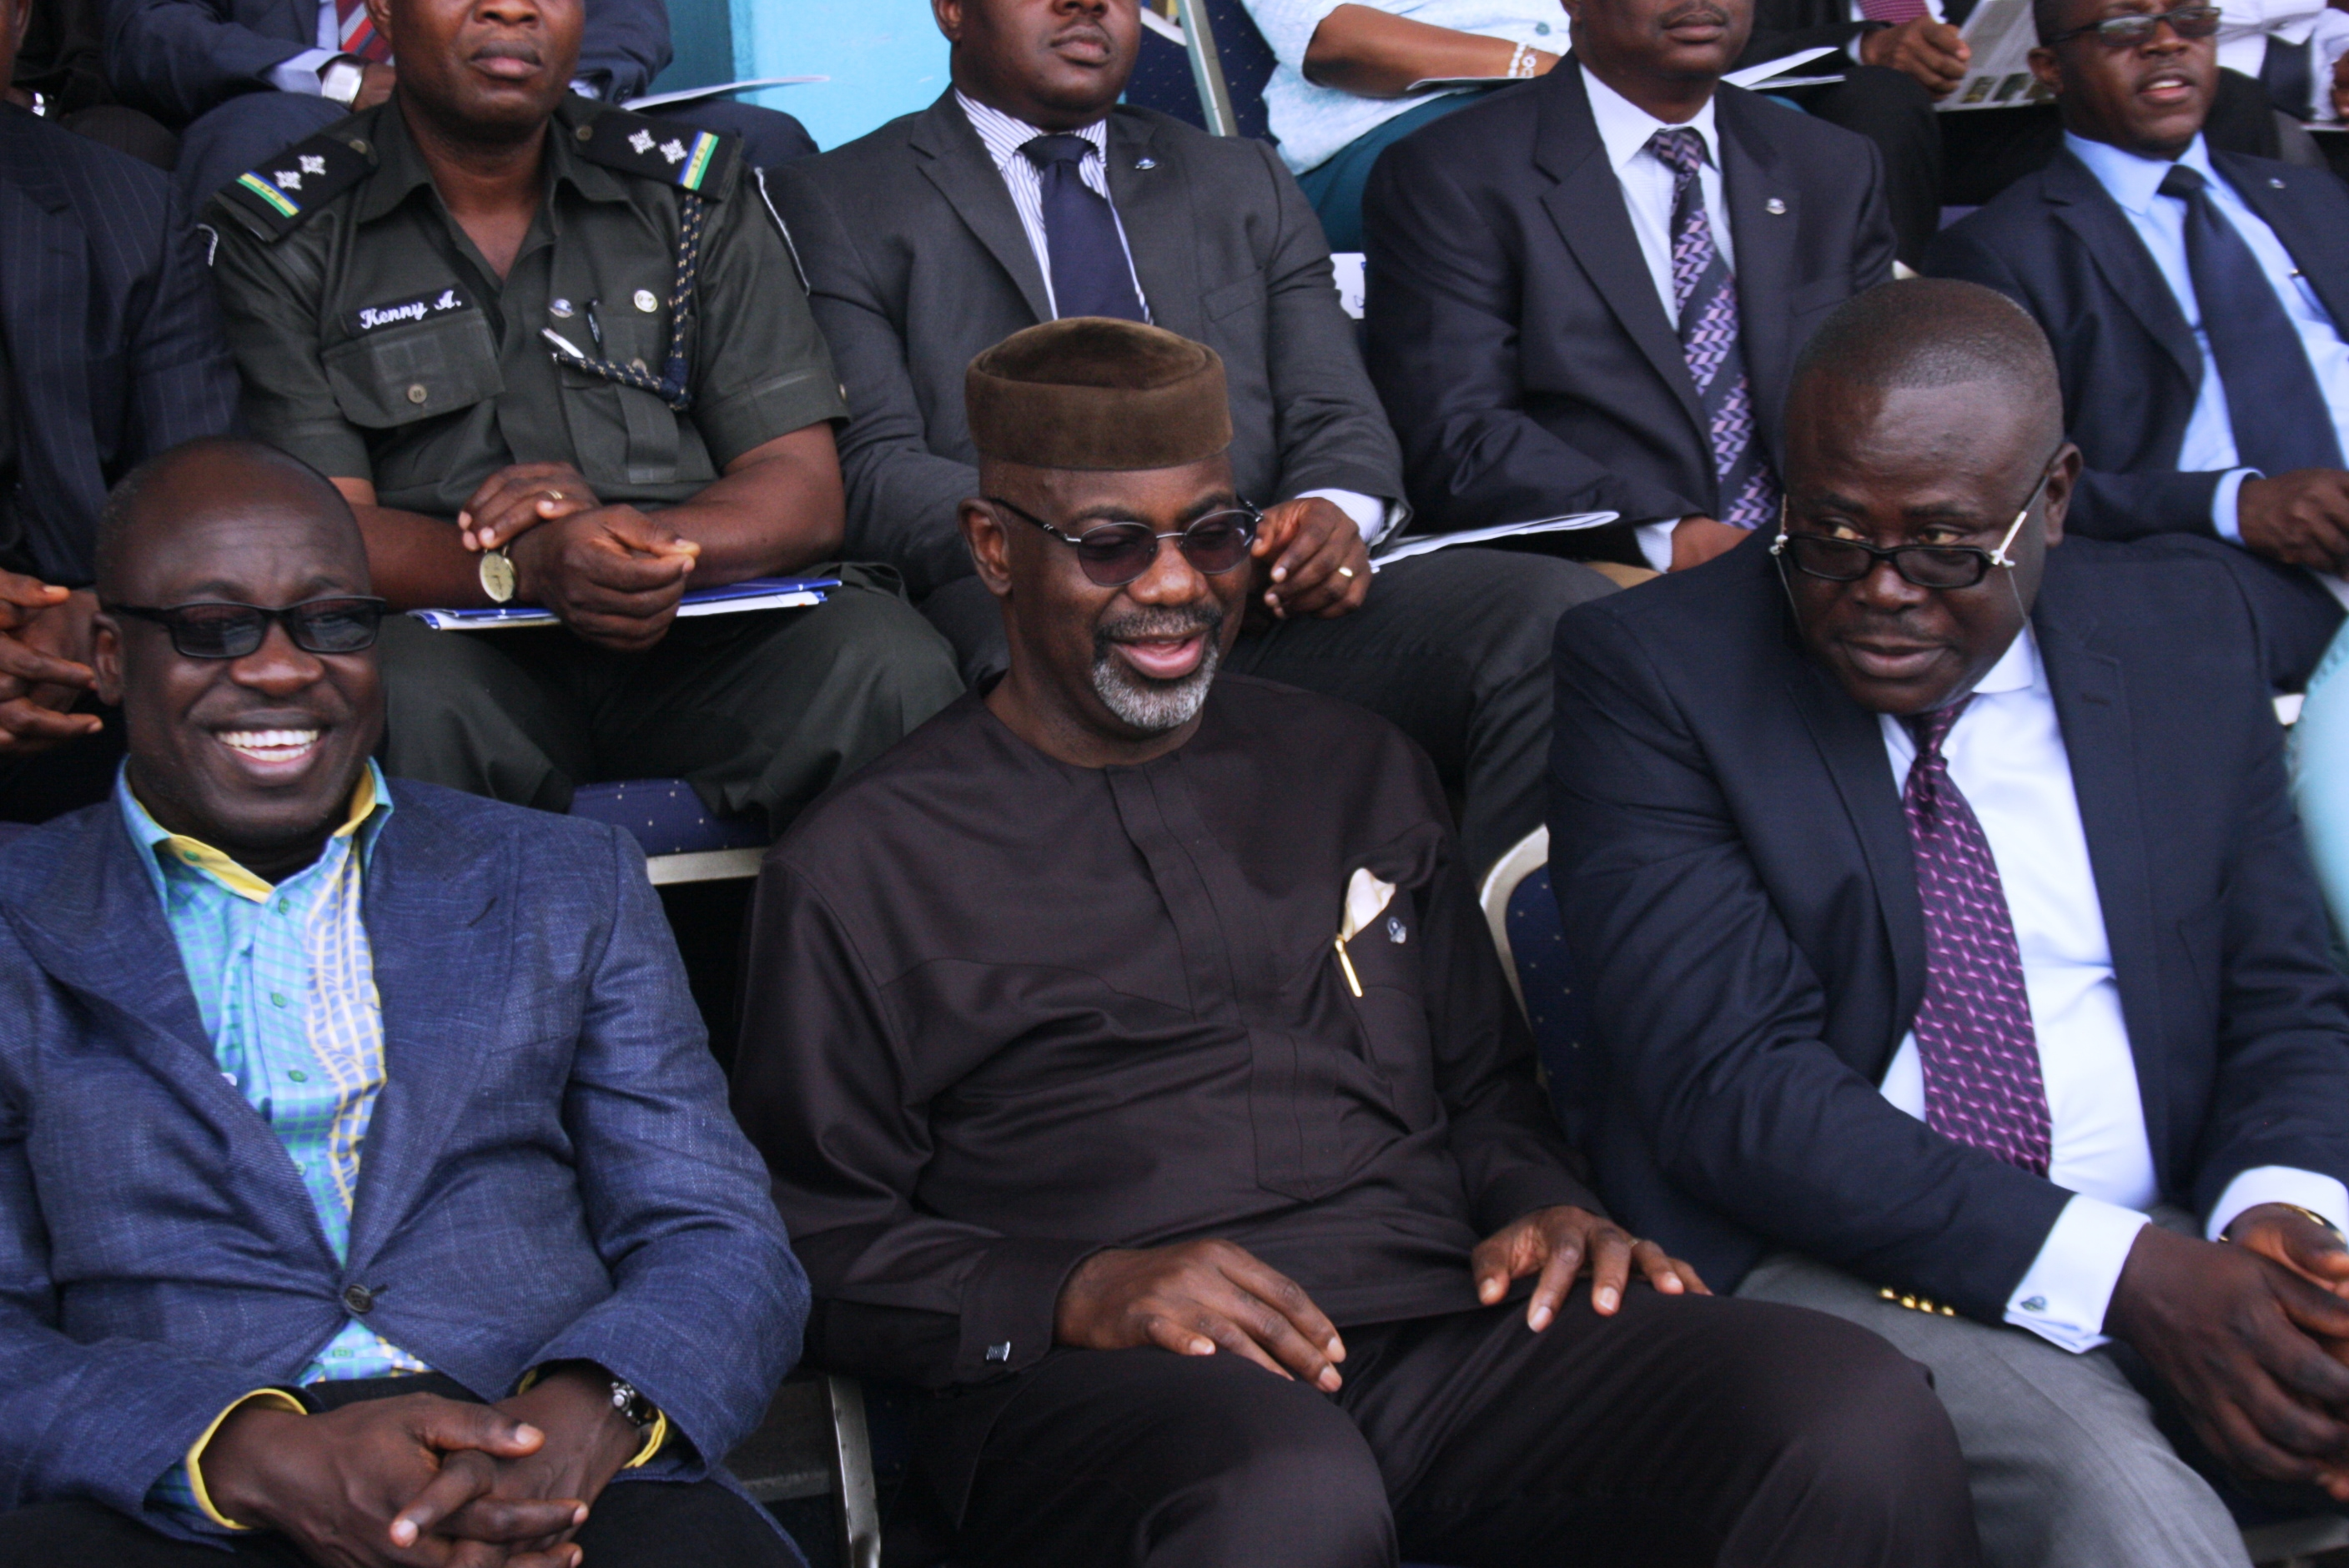 From Left, Minister of Sports Mallam Bolaji Abdullahi, Cross River State Governor, Senator Liyel Imoke and his Deputy, Mr. Efiok Cobham at the opening ceremony of the  third edition of the Cross River State/All Nigeria Athletics Championship at the U J Esuene stadium, Calabar, Wednesday